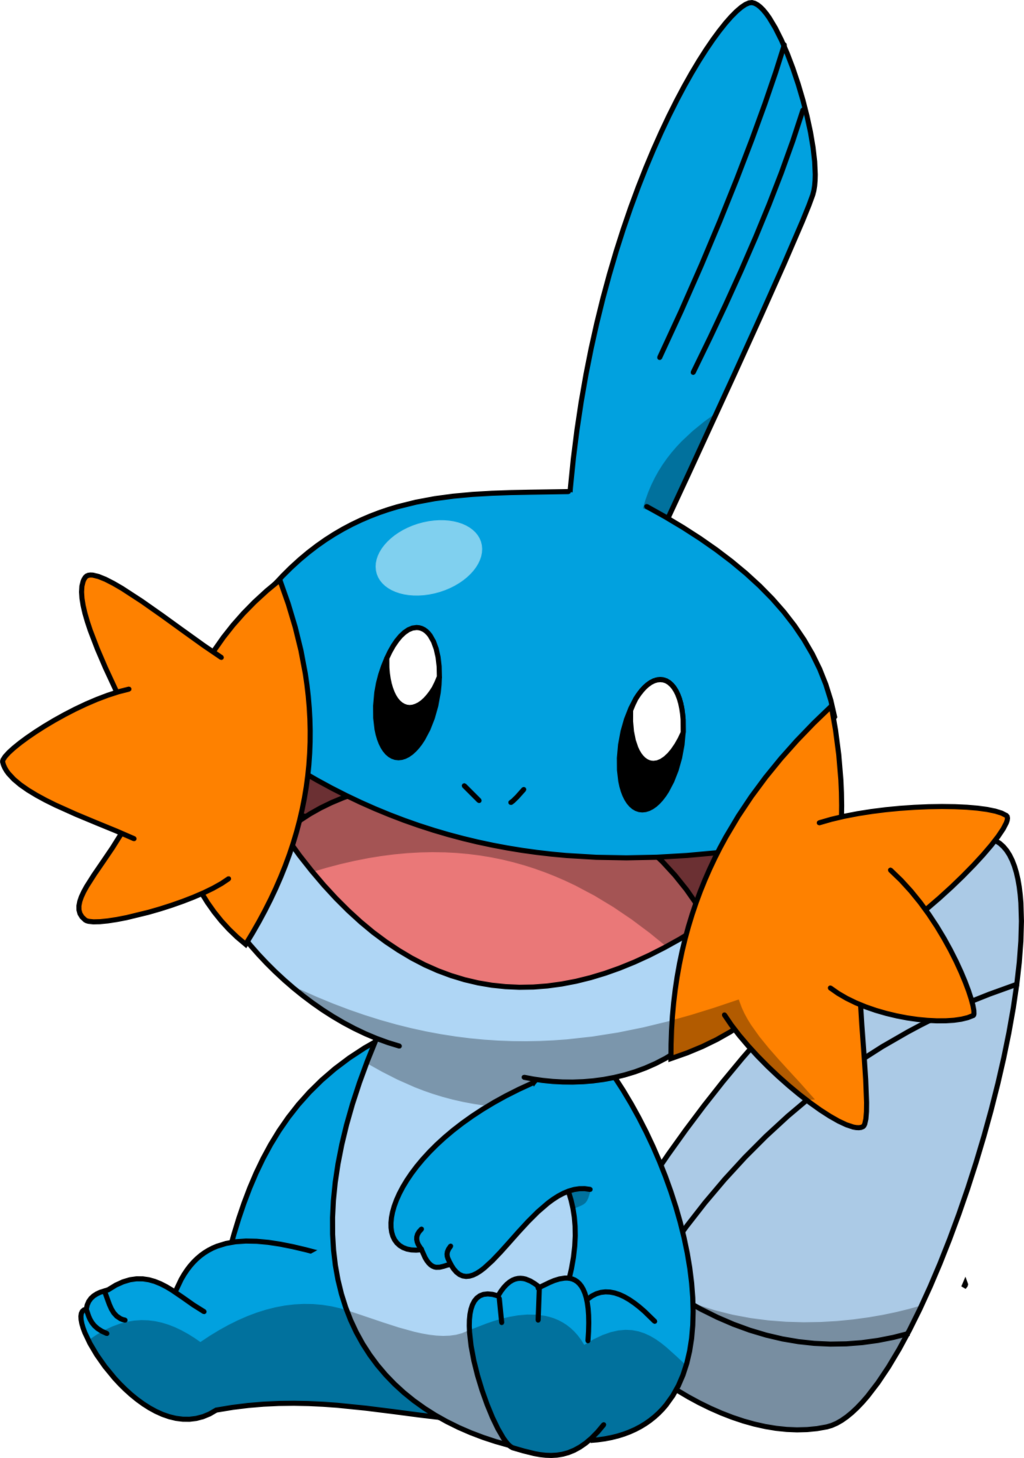 Scared swimming fast black and white fish clipart picture freeuse mudkip #pokemon #anime | Anime/Manga | Pinterest | Mudkip, Pokémon ... picture freeuse